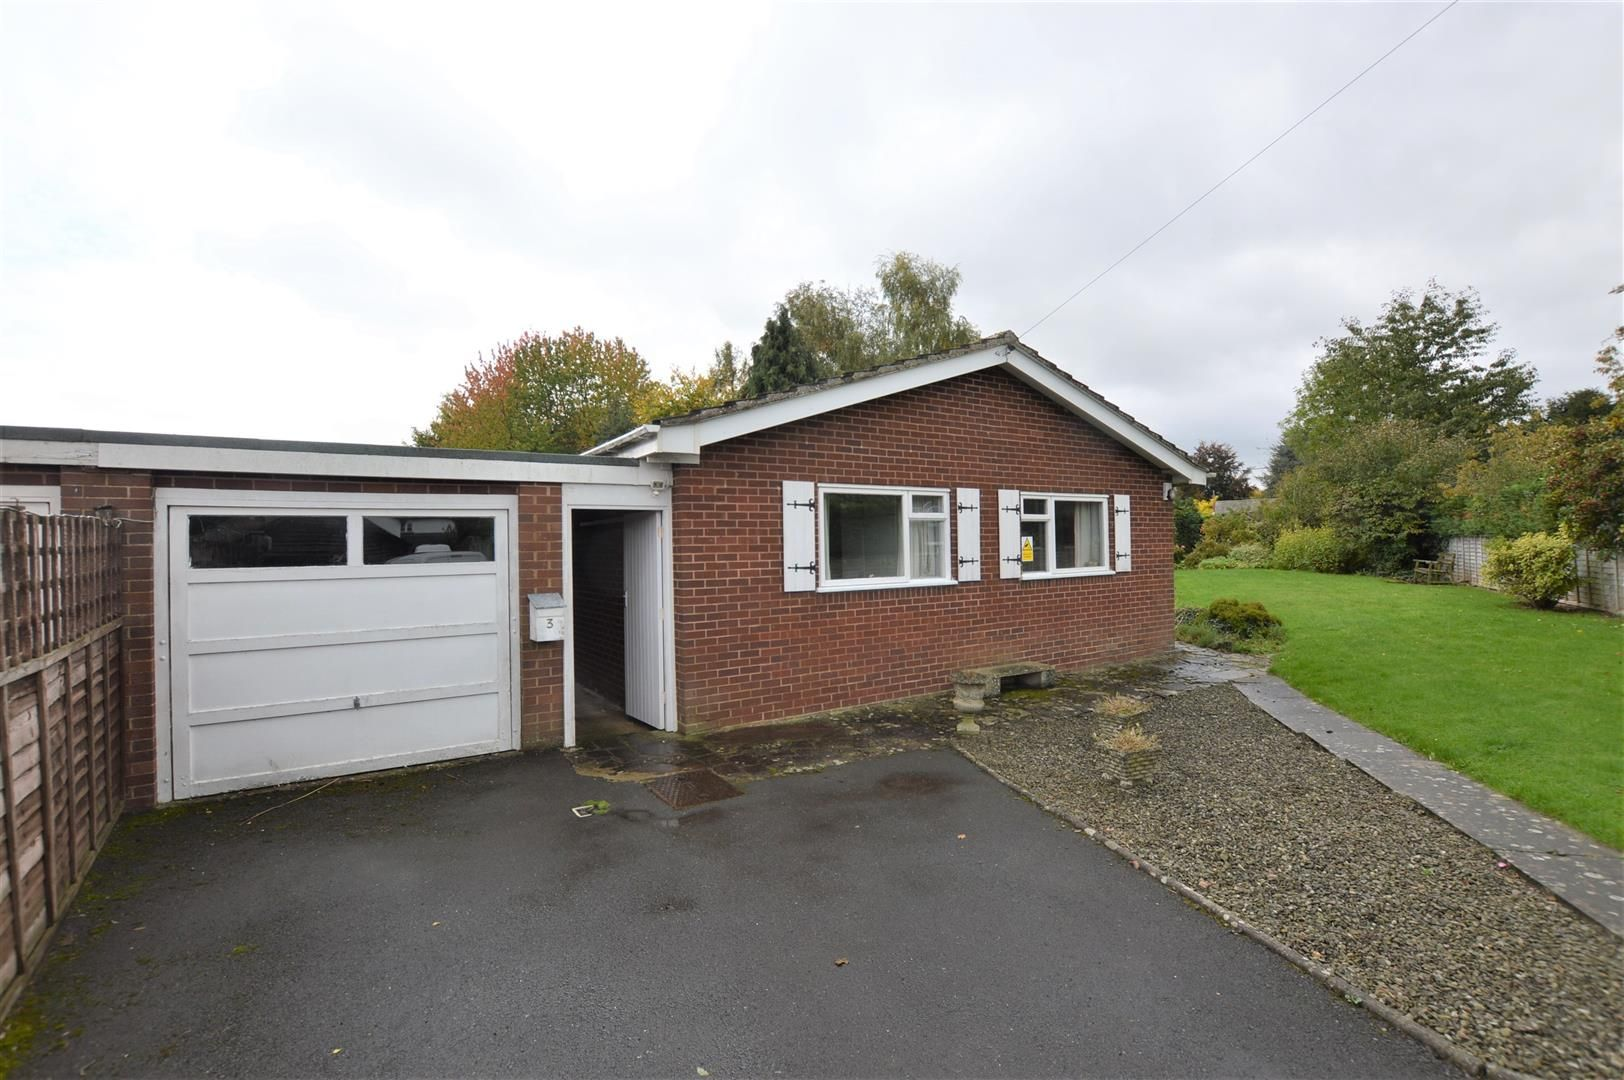 3 bed detached bungalow for sale in Dilwyn, HR4